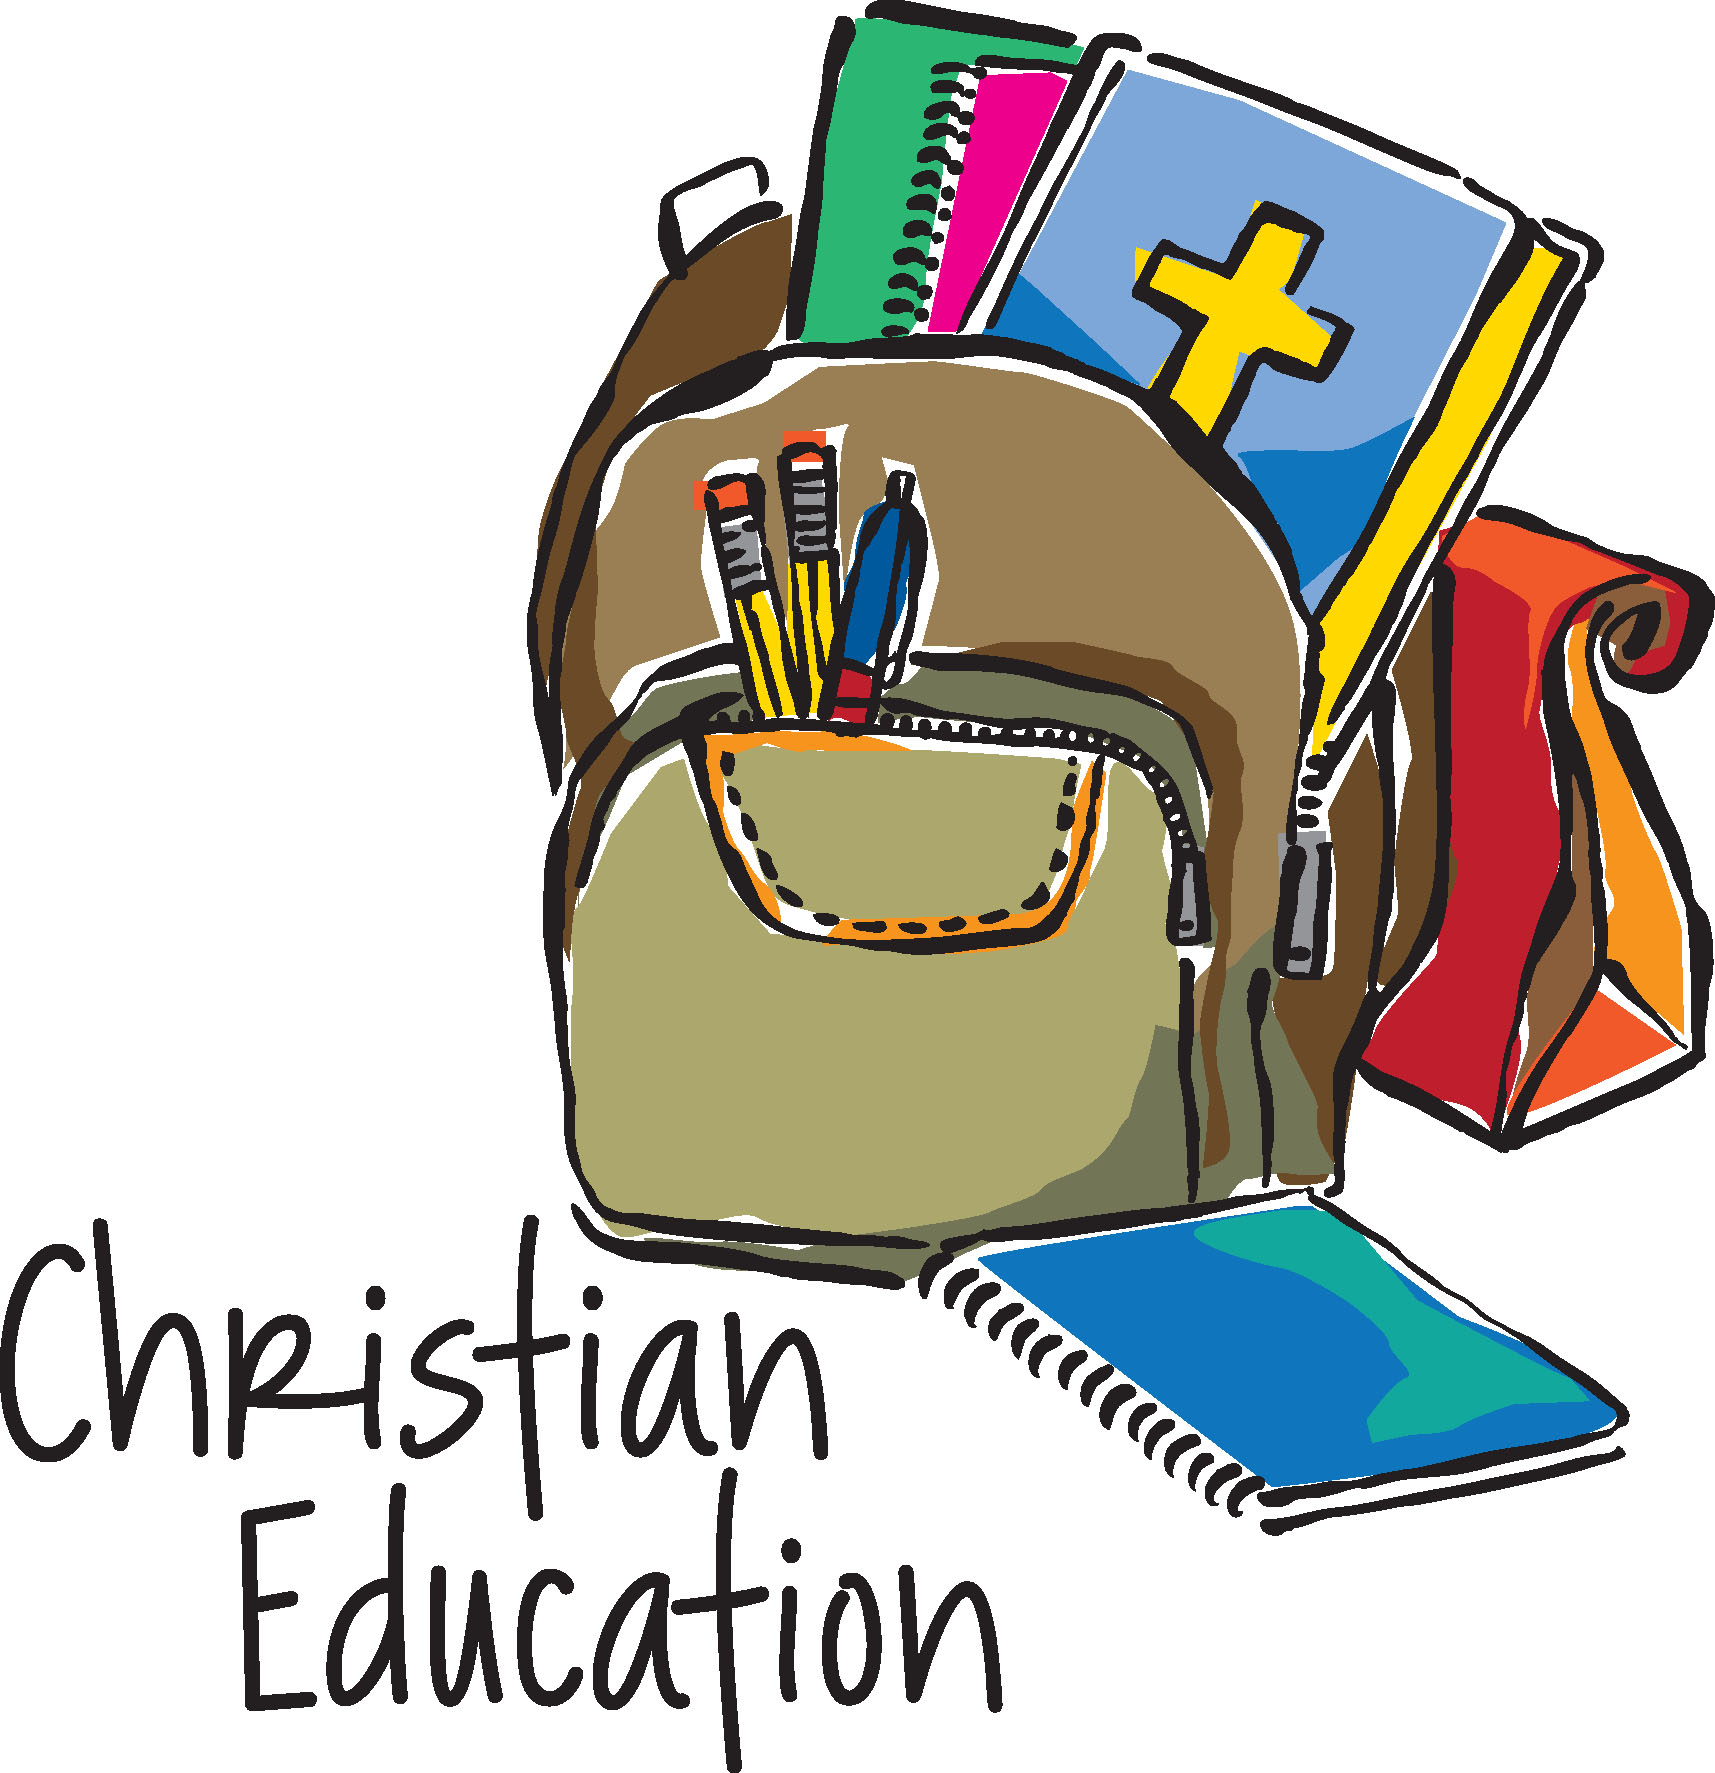 christian education Christian light education (cle) mennonite homeschool curriculum provides homeschoolers with a wholesome curriculum that's easy to use at home.